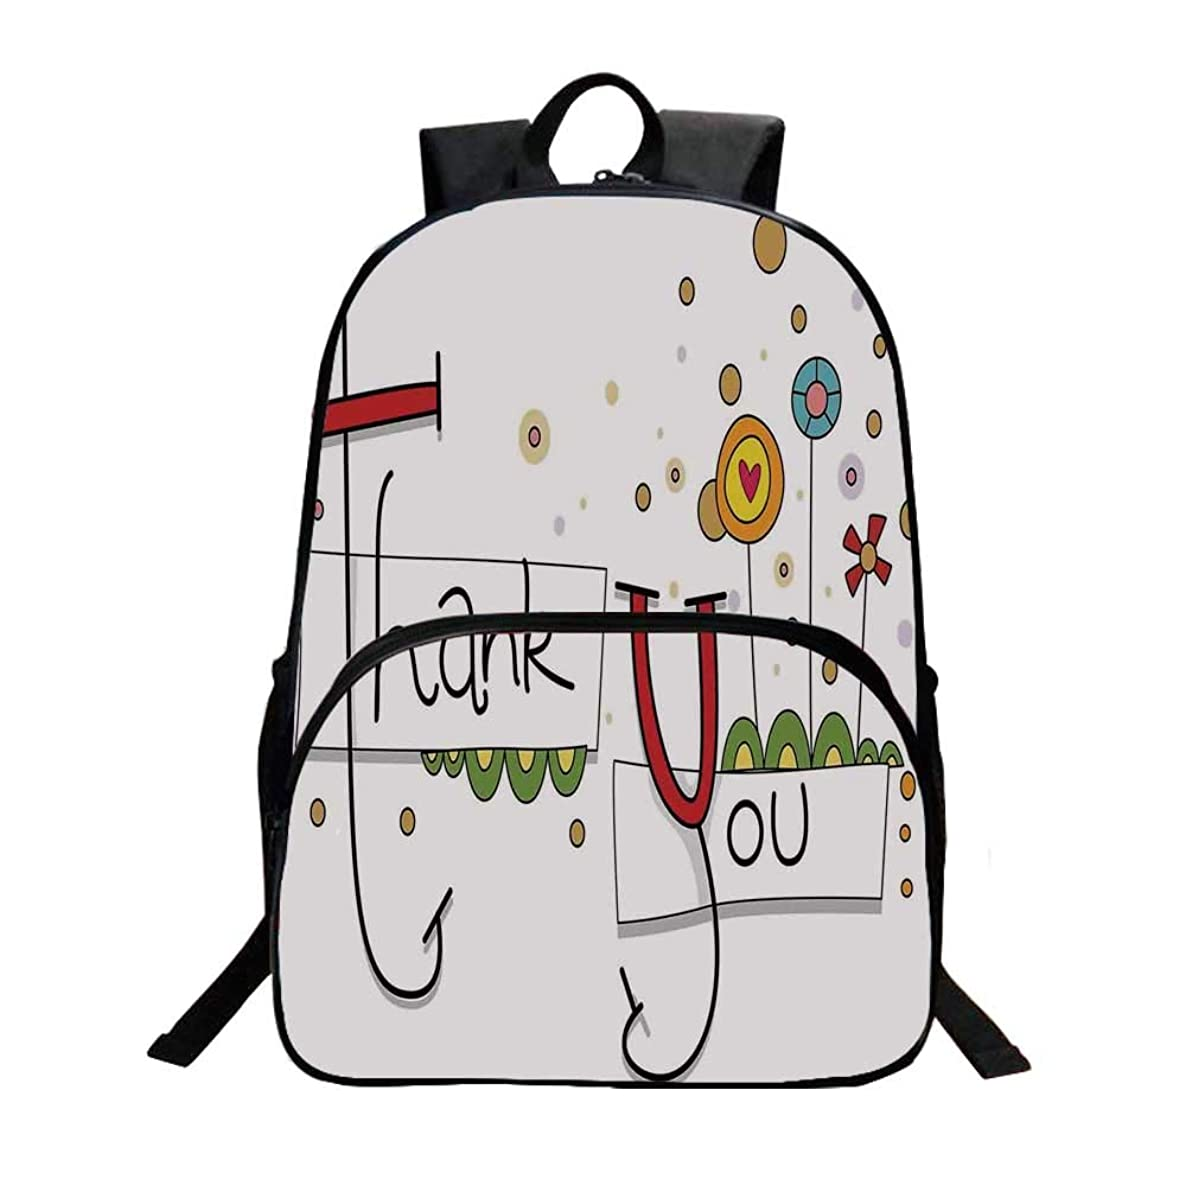 Graphic Art Fashionable Backpack,Fun Thank You Typography with Abstract Cartoon Style Flowers Hearts and Dots for Boys,11.8